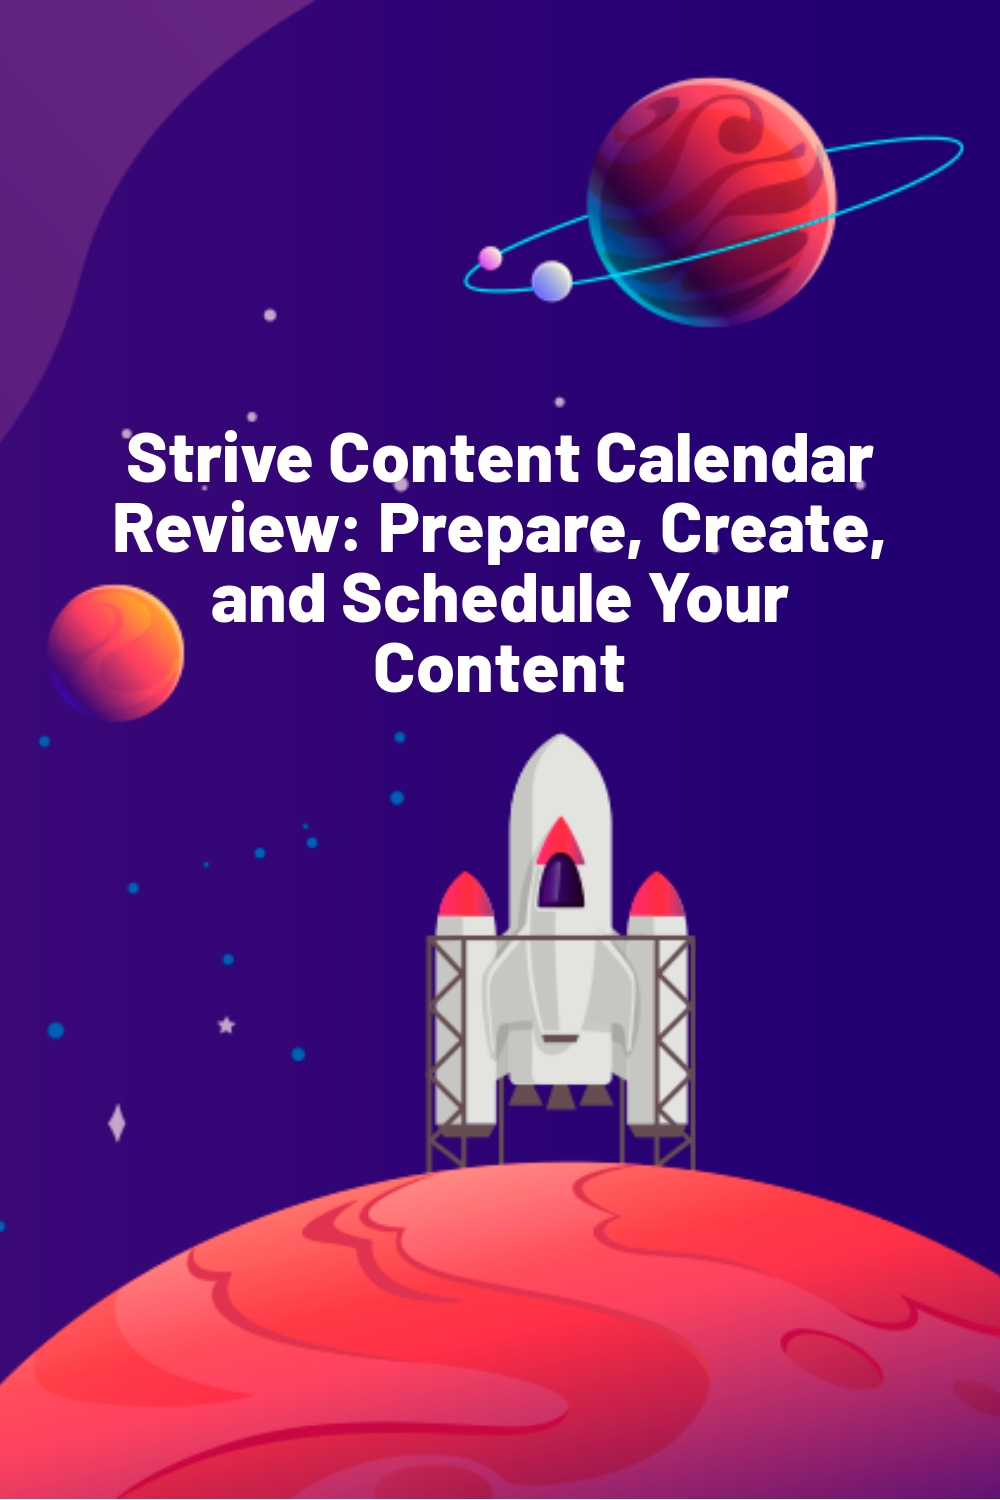 Strive Content Calendar Review: Prepare, Create, and Schedule Your Content